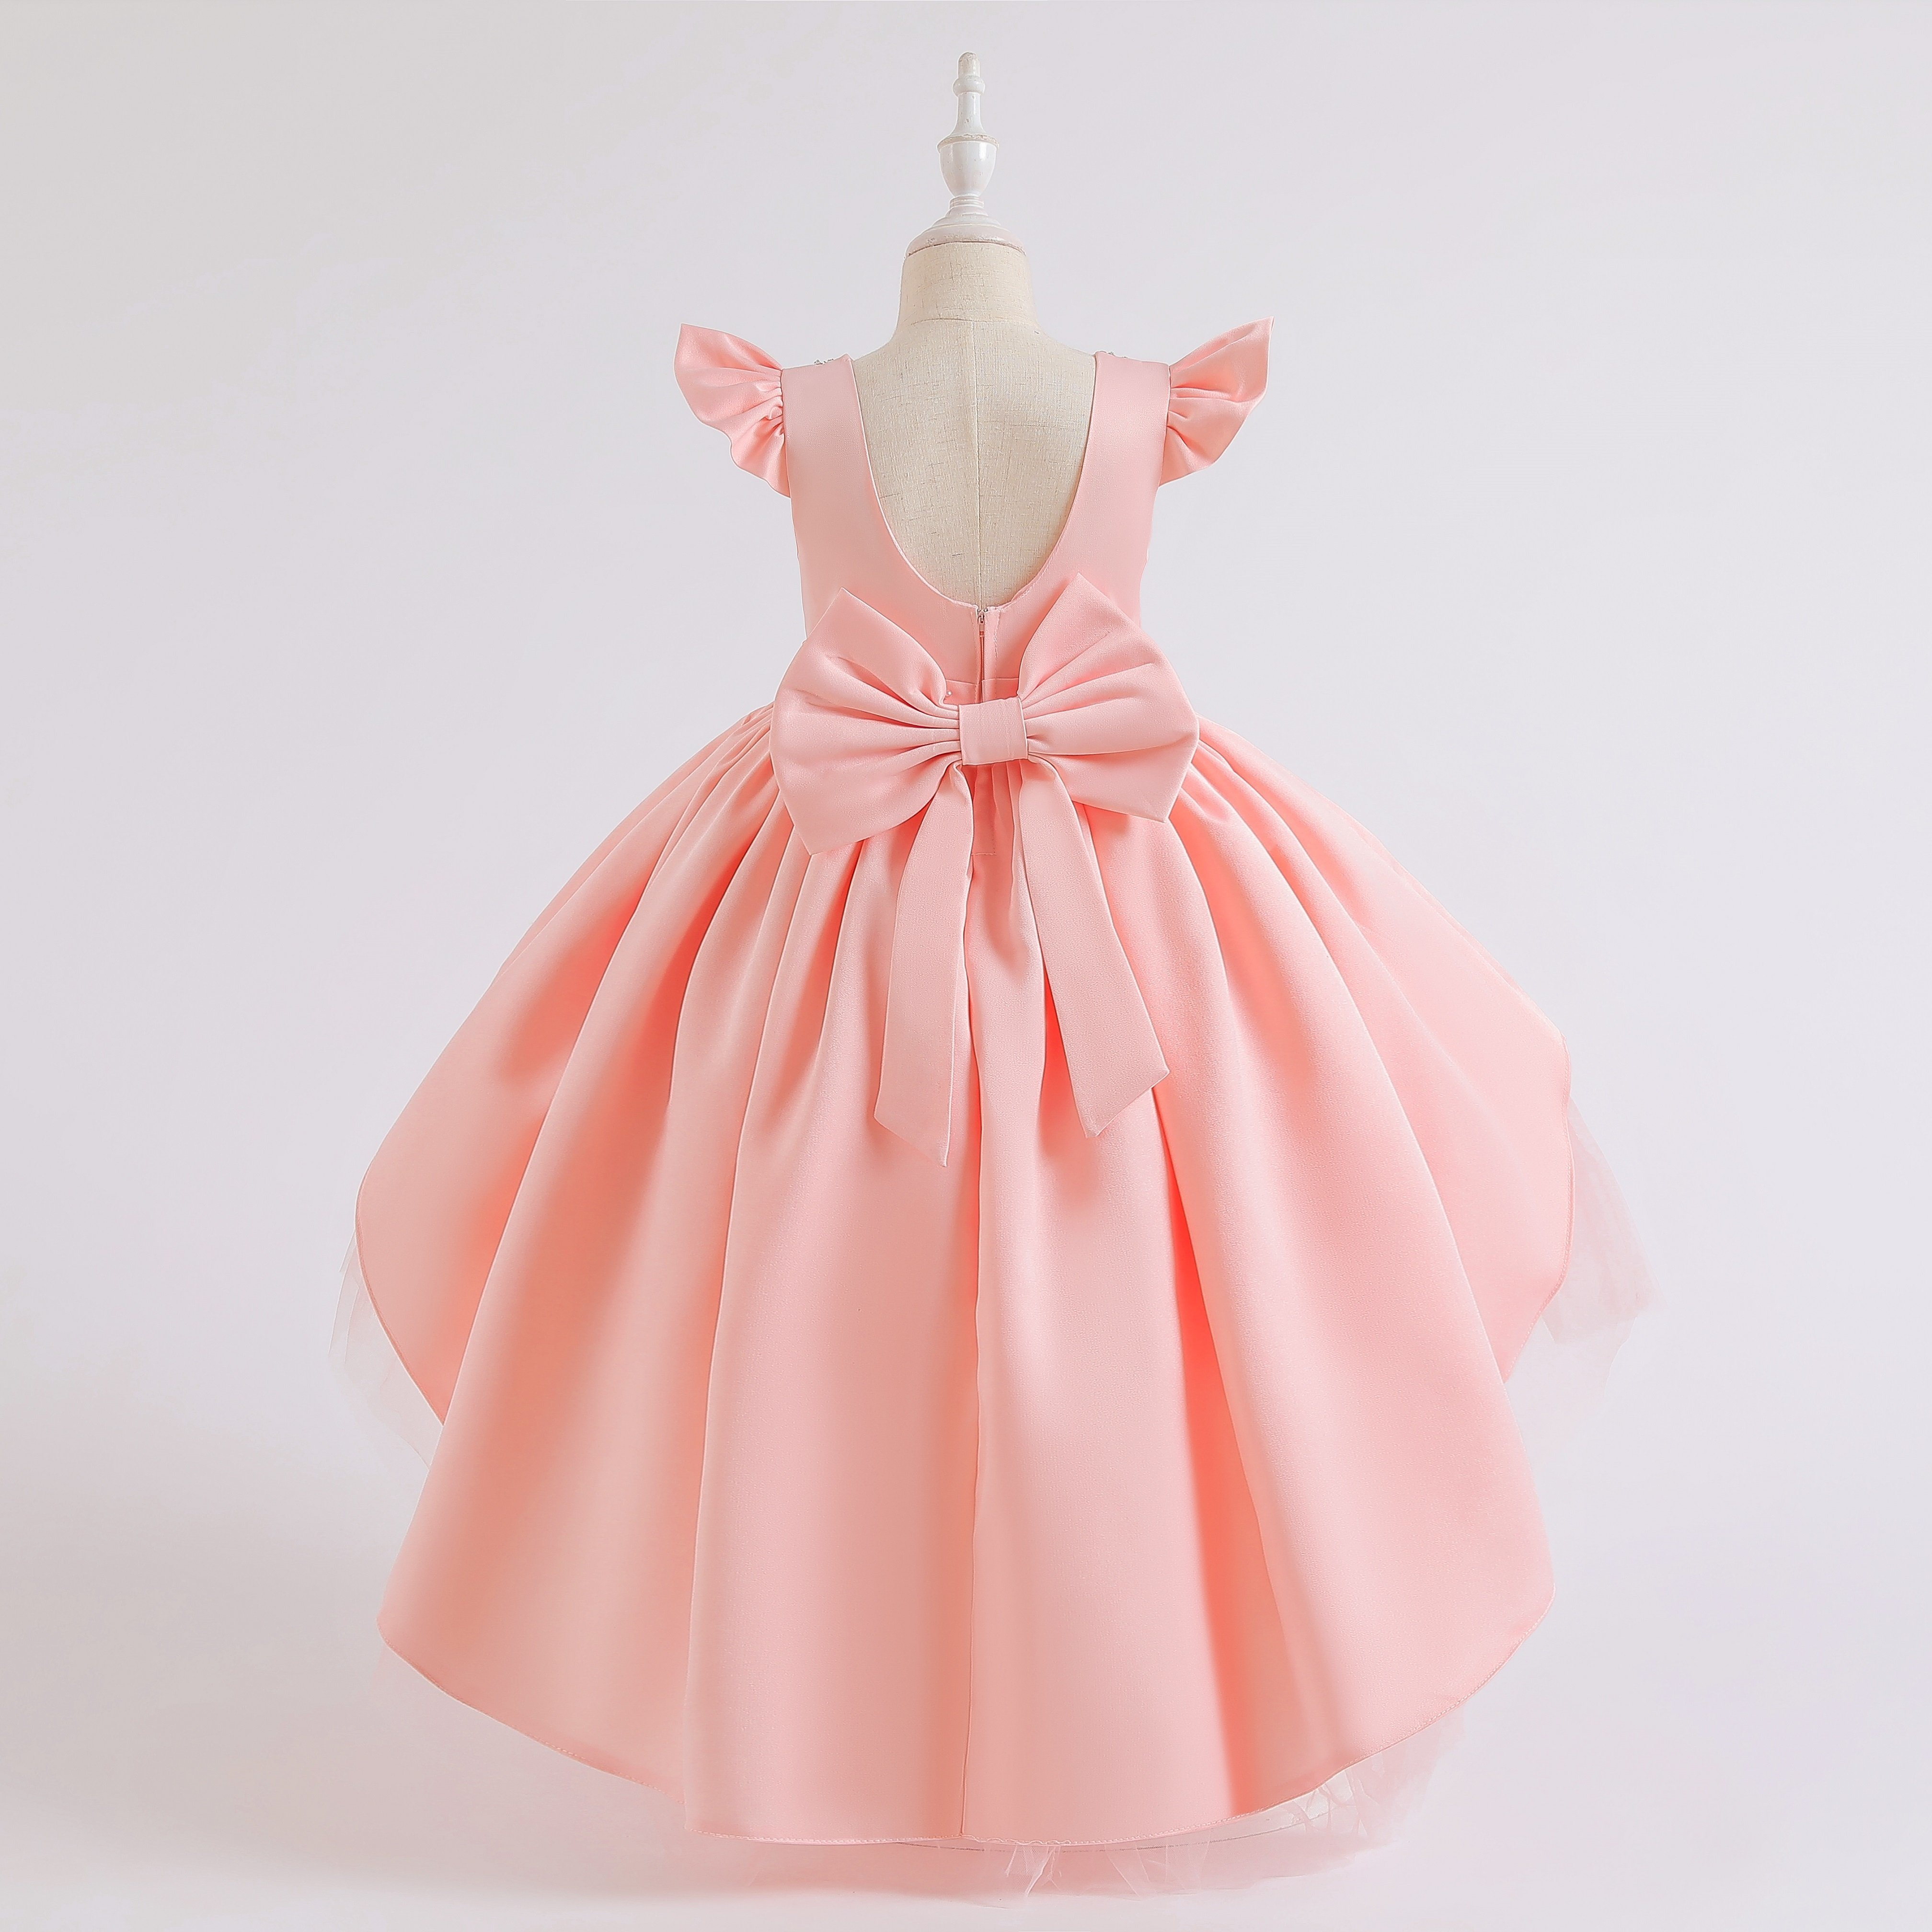 The New 2021 Dovetail Dresses Of The Girls Delicate Baby Girl Clothes The Nice Party Dress Children Flower Gownfashion Kids Infants Designer Clothing Garment China Children Dress And Children Cake Skirt